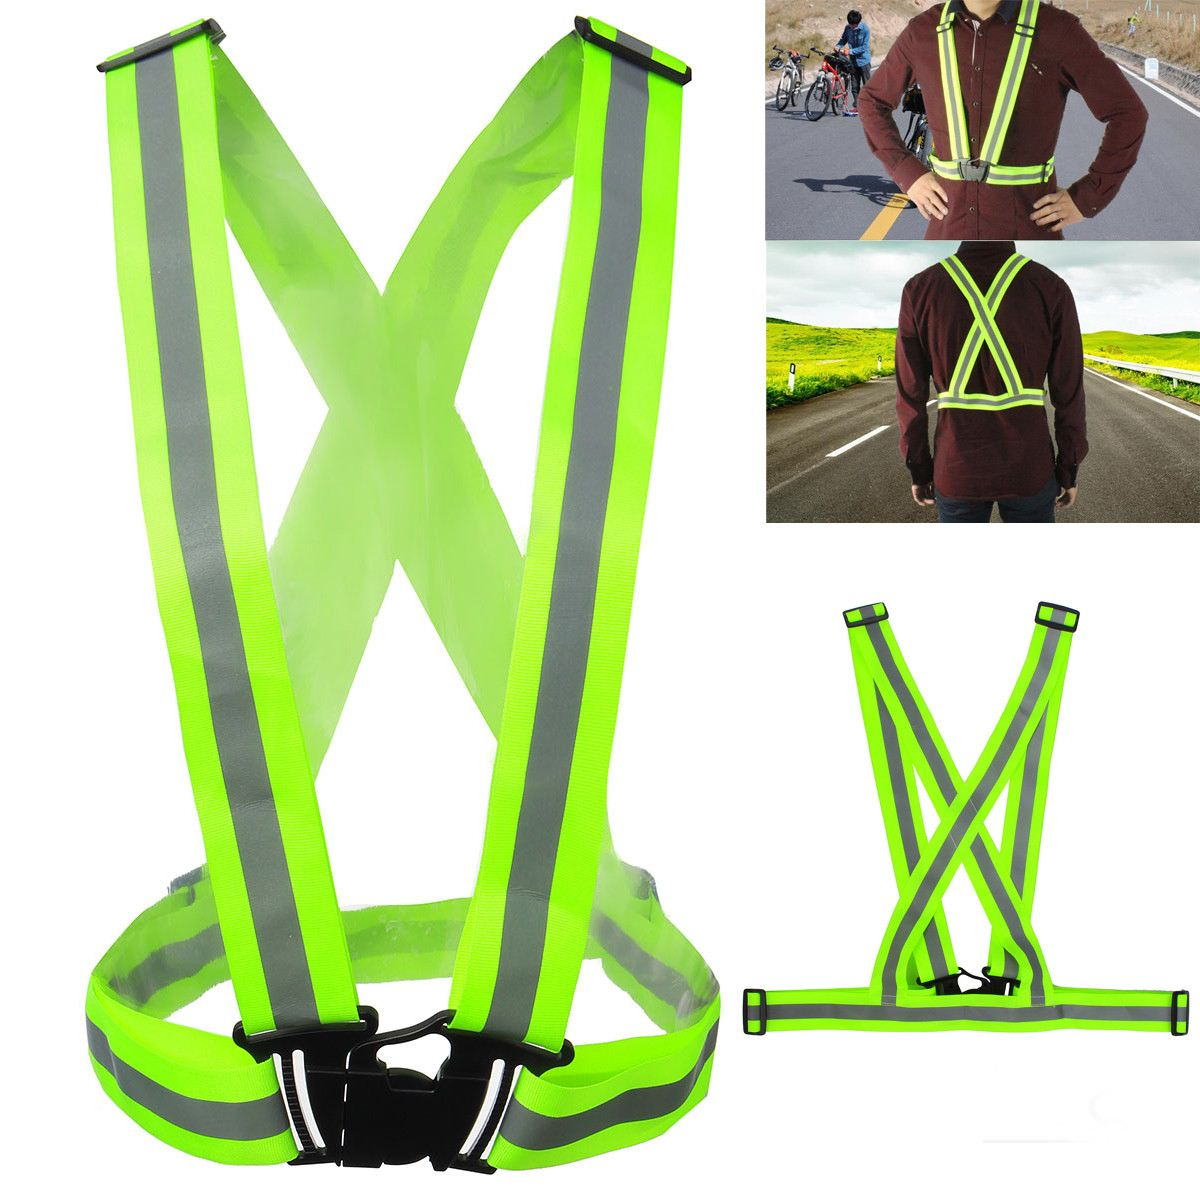 Unisex Outdoor High Visibility Safety Vest Waistcoat Jacket Safety Security Reflective Belt Coat Adjustable For Running CyclingUnisex Outdoor High Visibility Safety Vest Waistcoat Jacket Safety Security Reflective Belt Coat Adjustable For Running Cycling